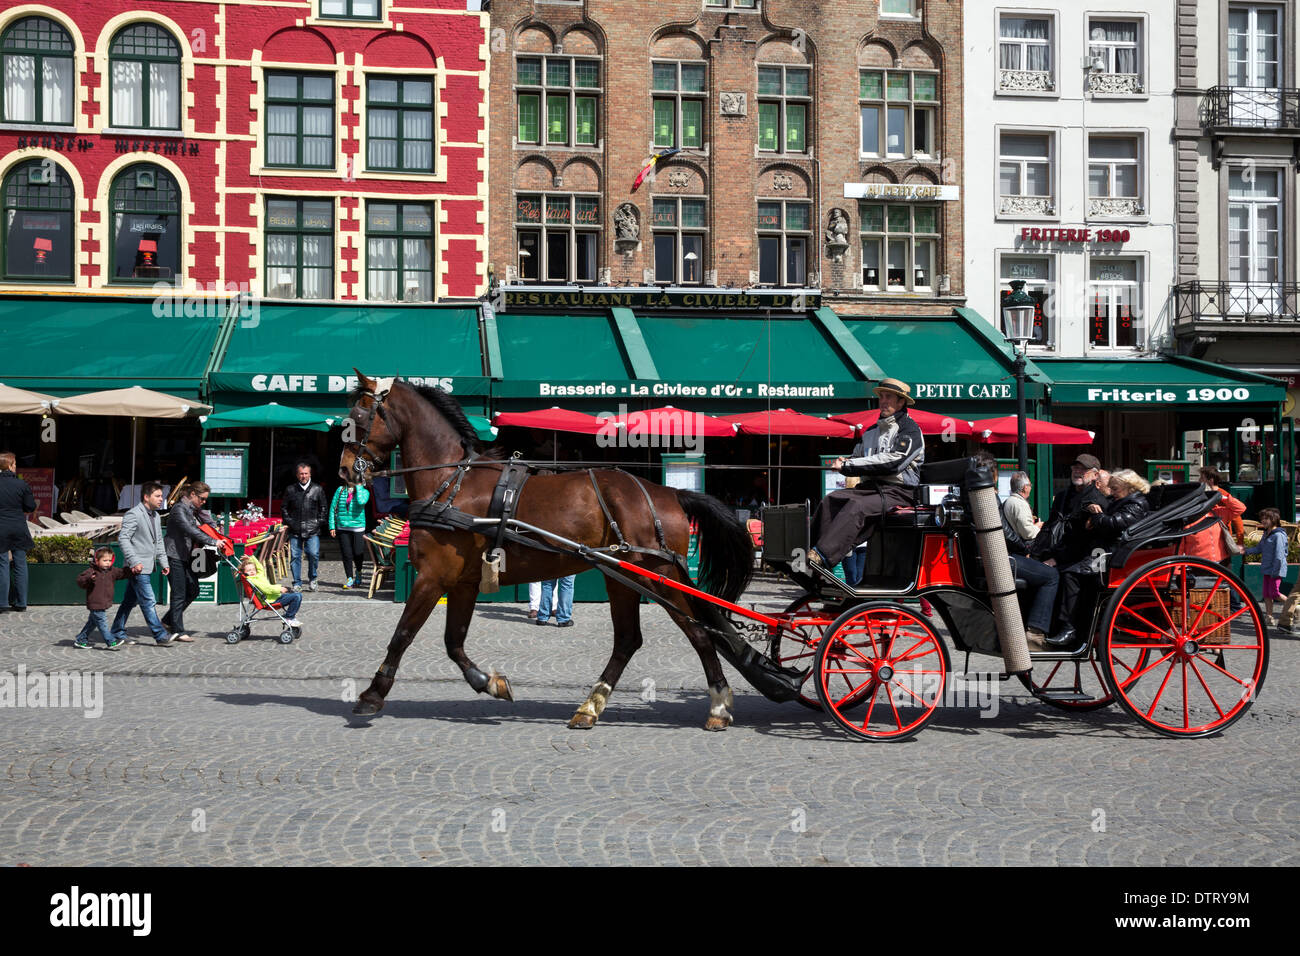 Horse drawn carriage transporting tourists through the Markt in Bruges - Stock Image